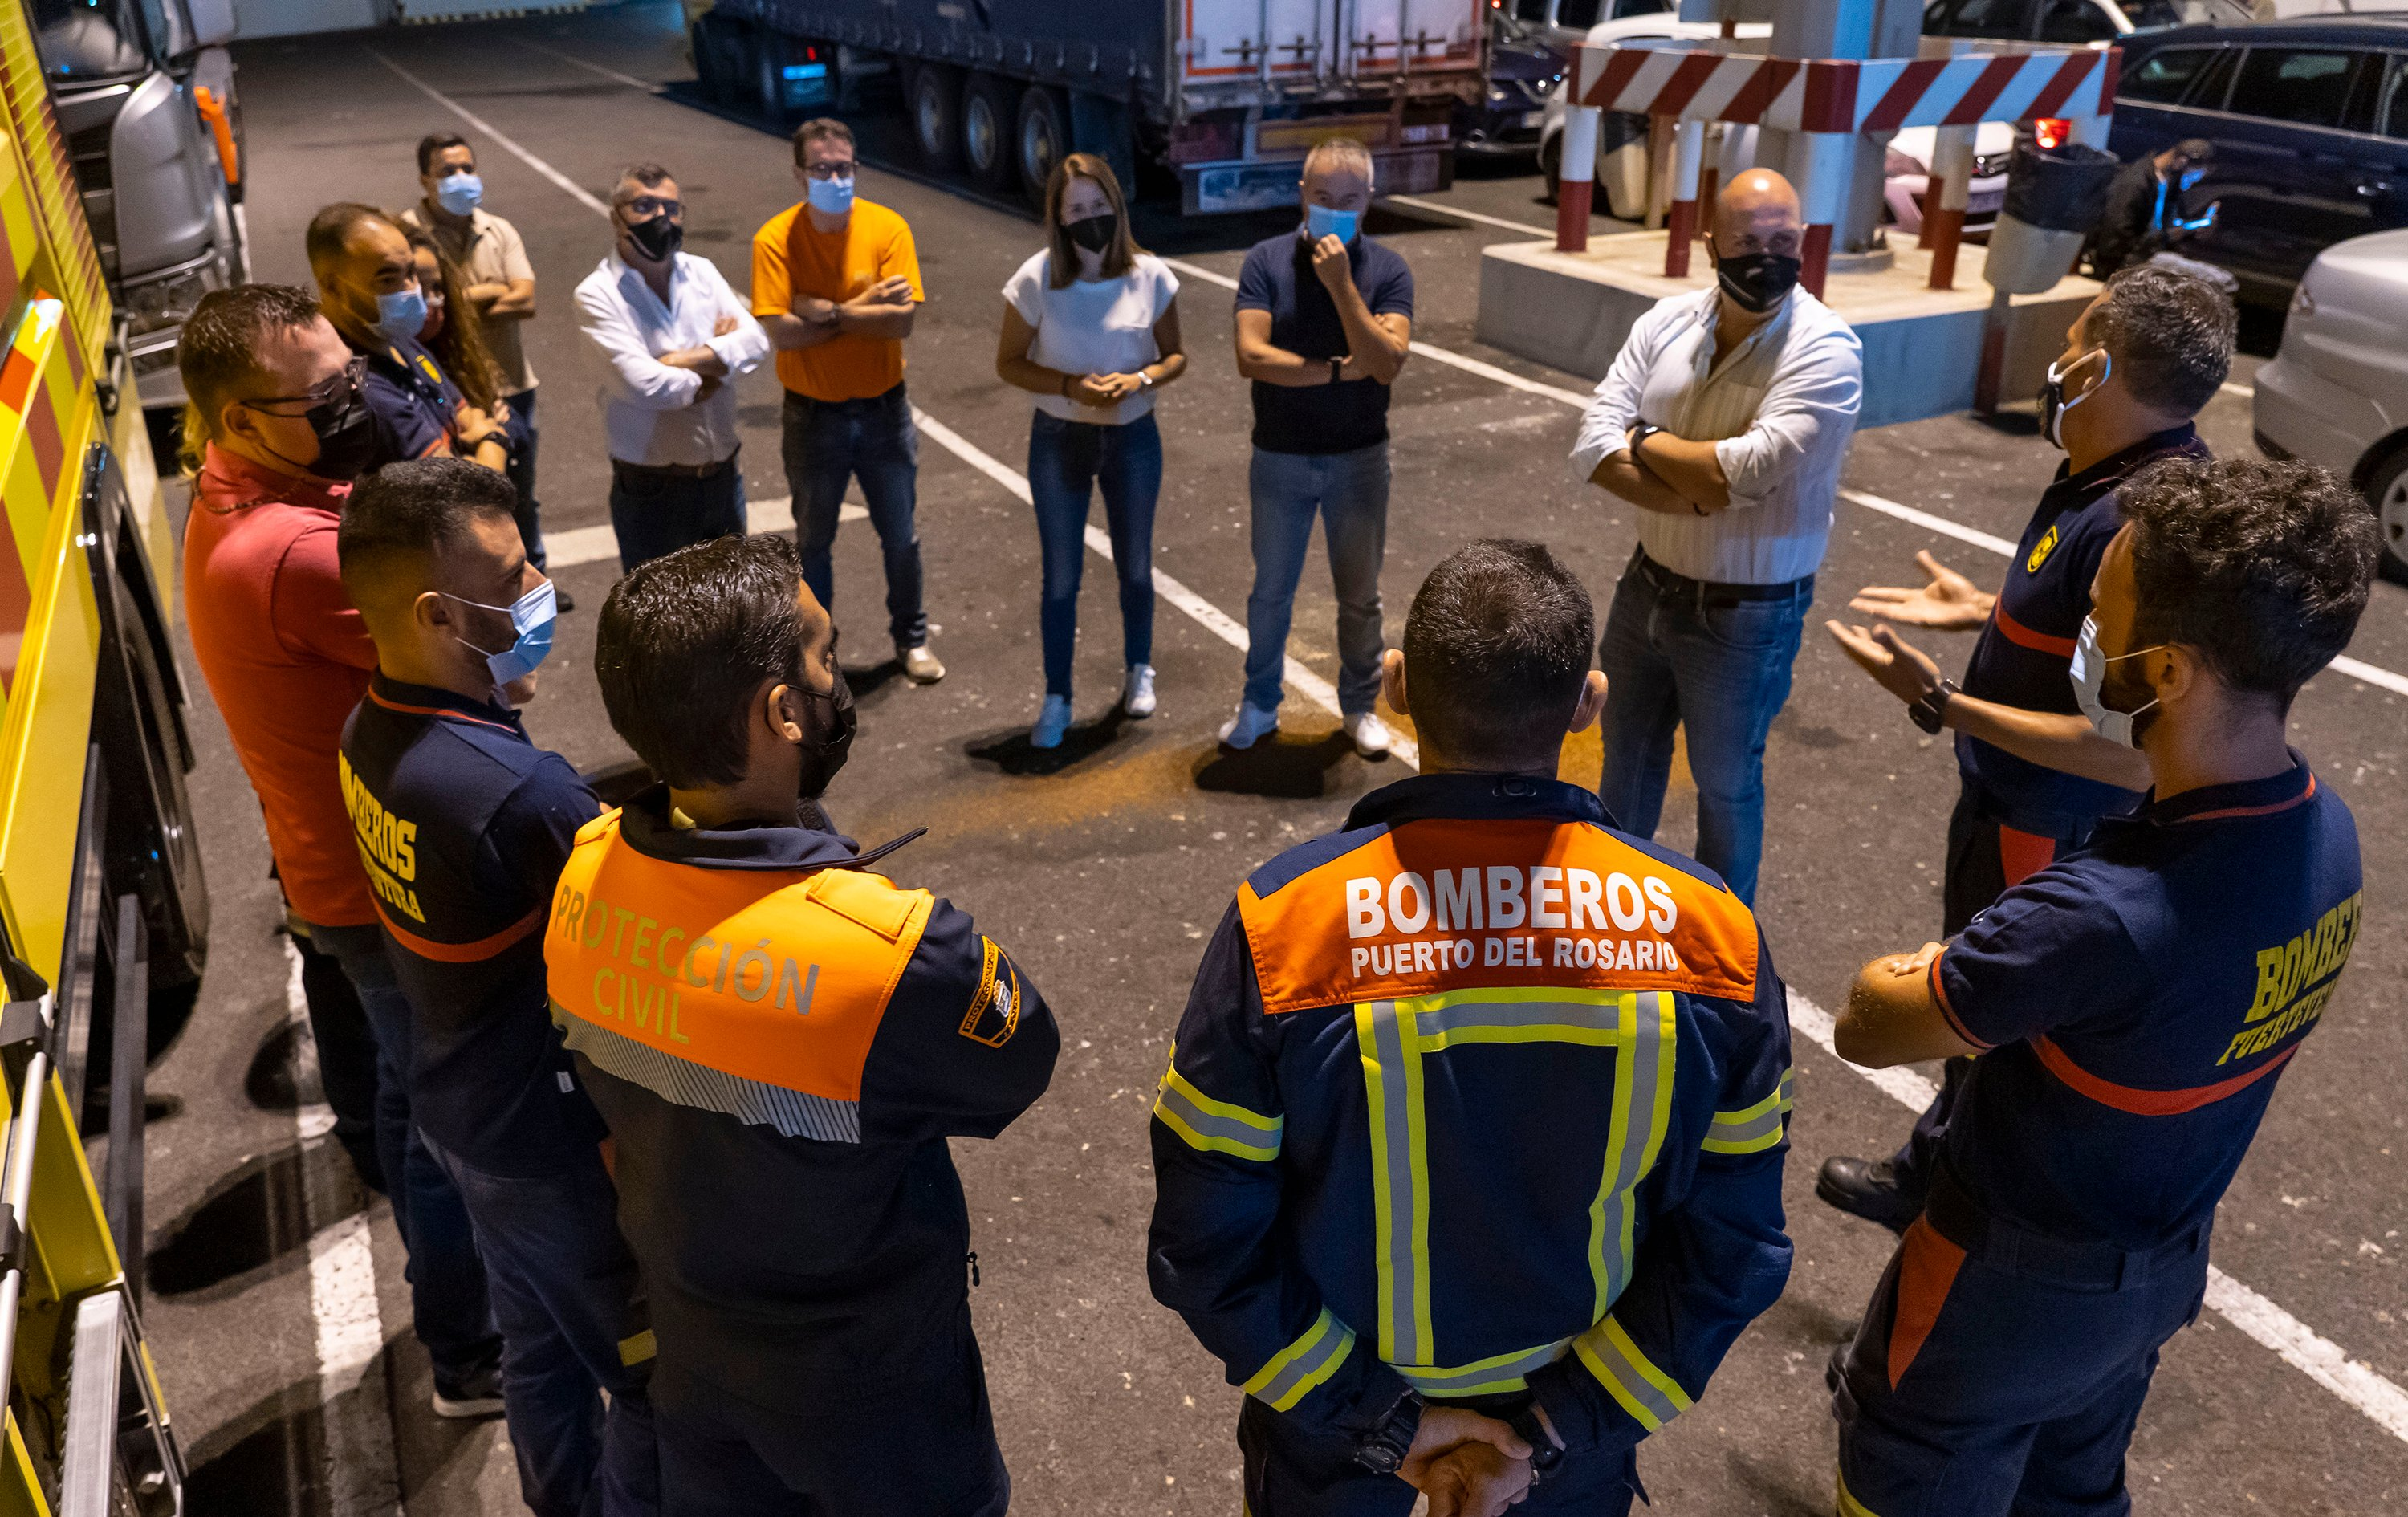 A Fire Brigade Leaves For La Palma To Help In Emergency Work